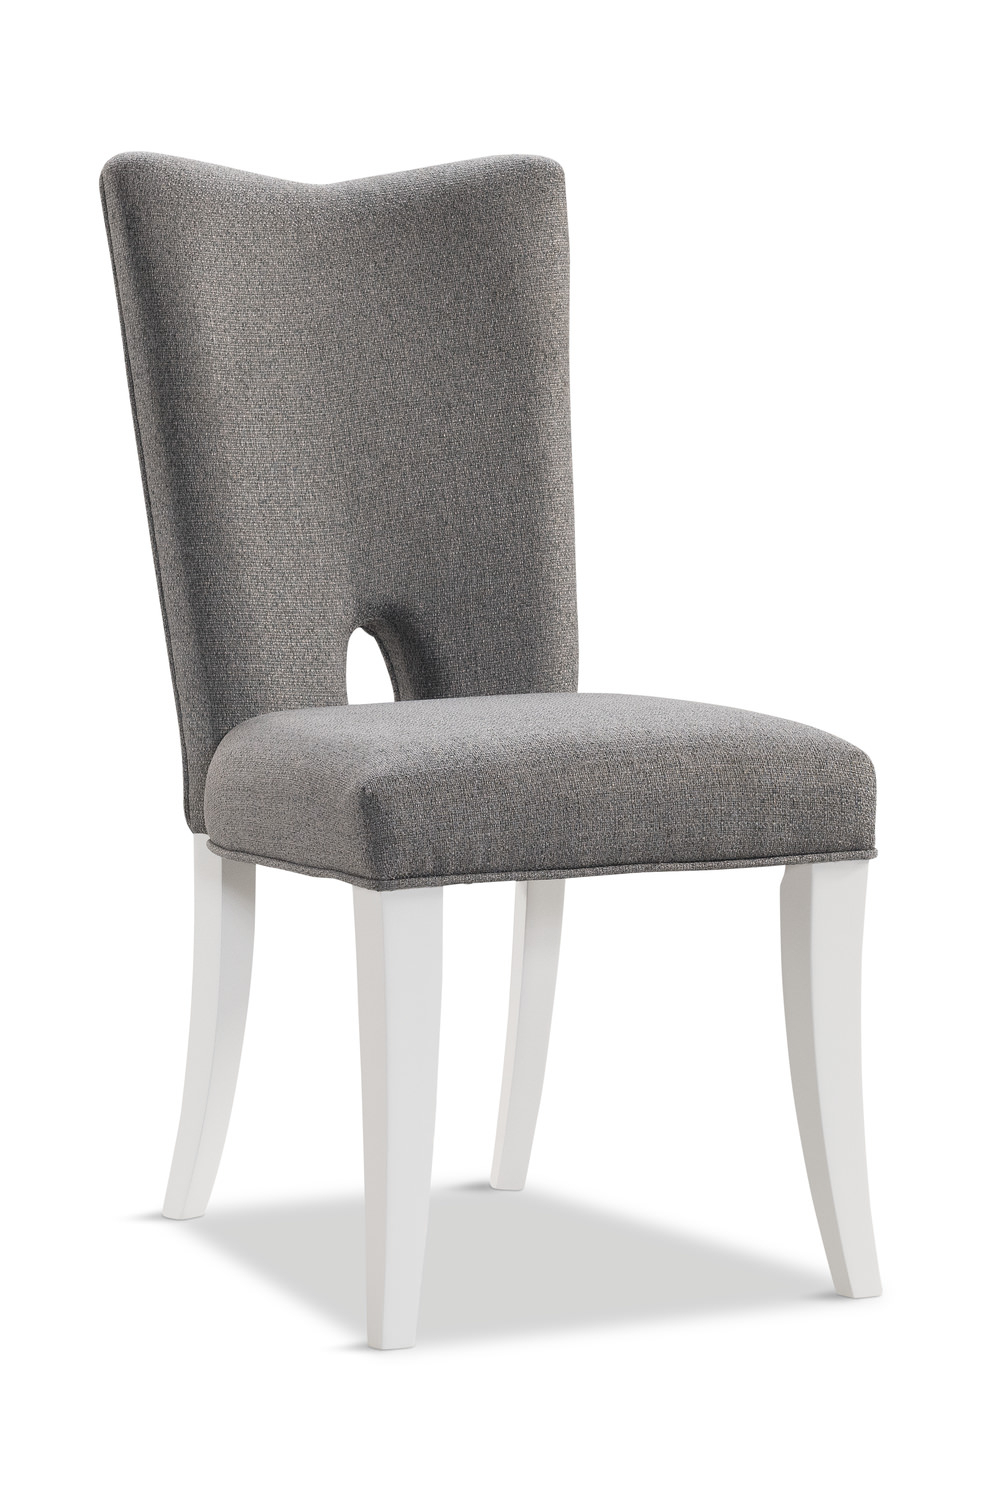 Lavo Upholstered Dining Chair In 2017 Partin 3 Piece Dining Sets (View 18 of 20)